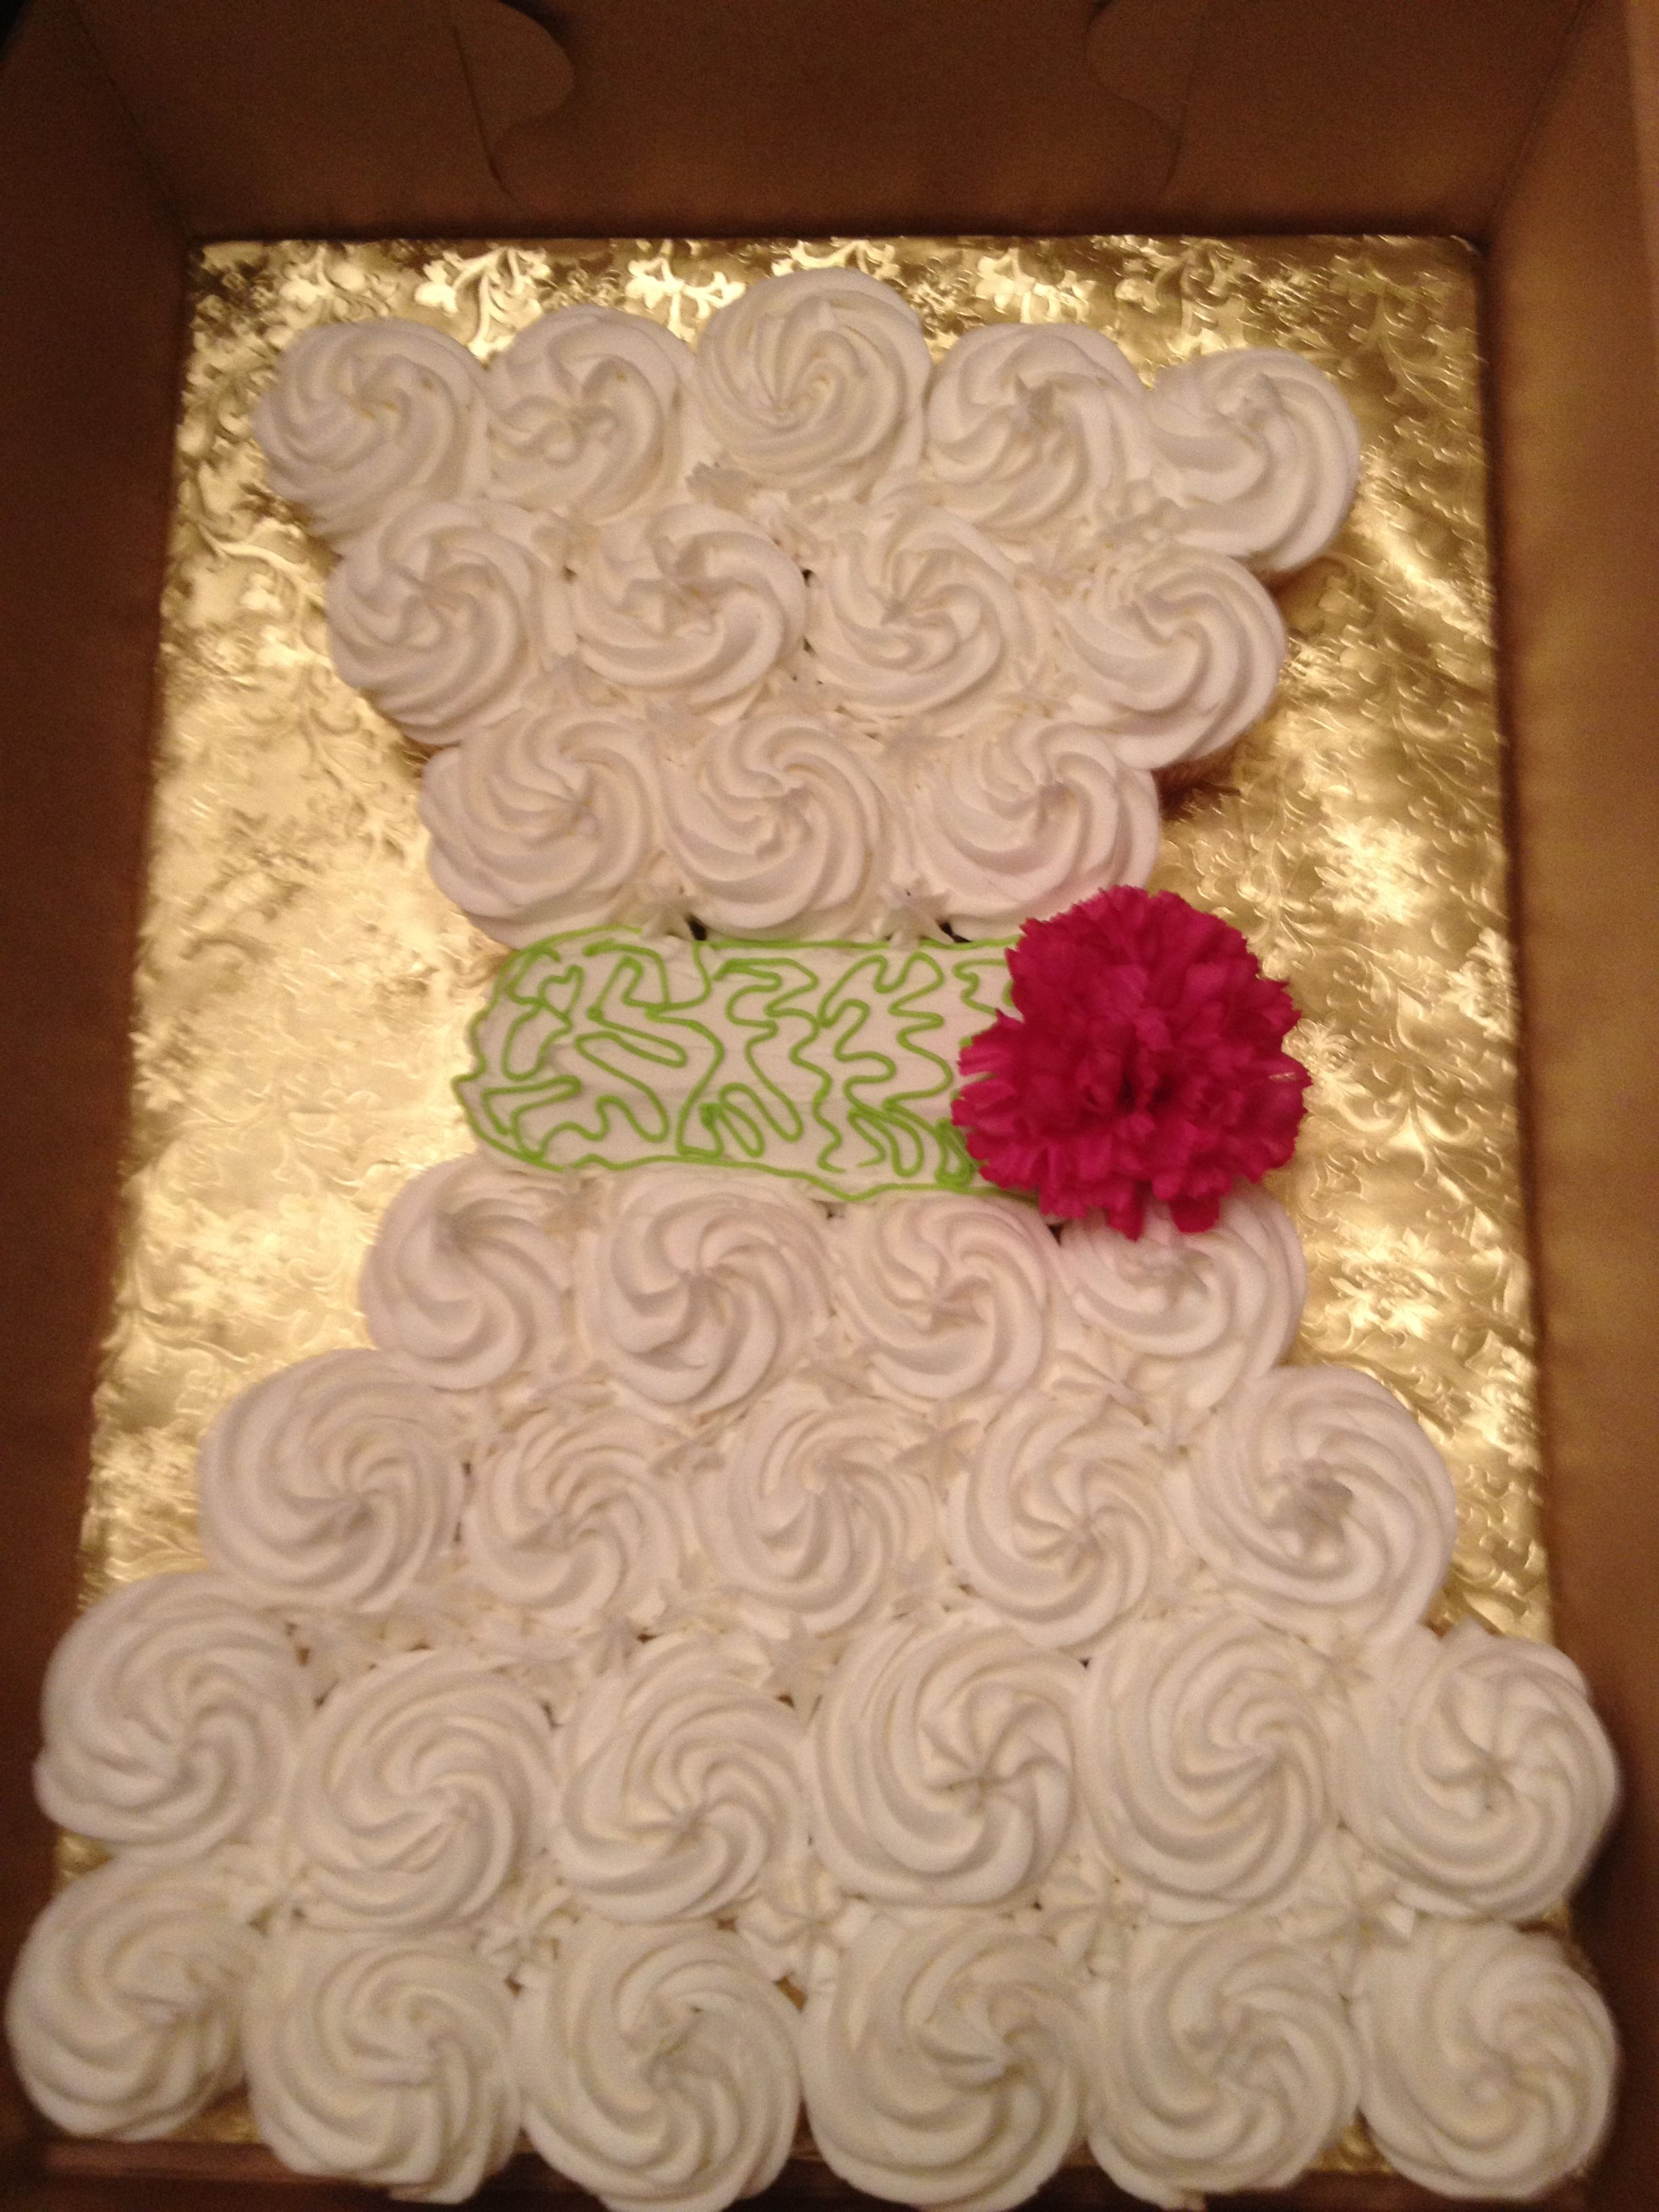 Wedding Dress Cupcake Cake Great For My Sisters Bridal Shower